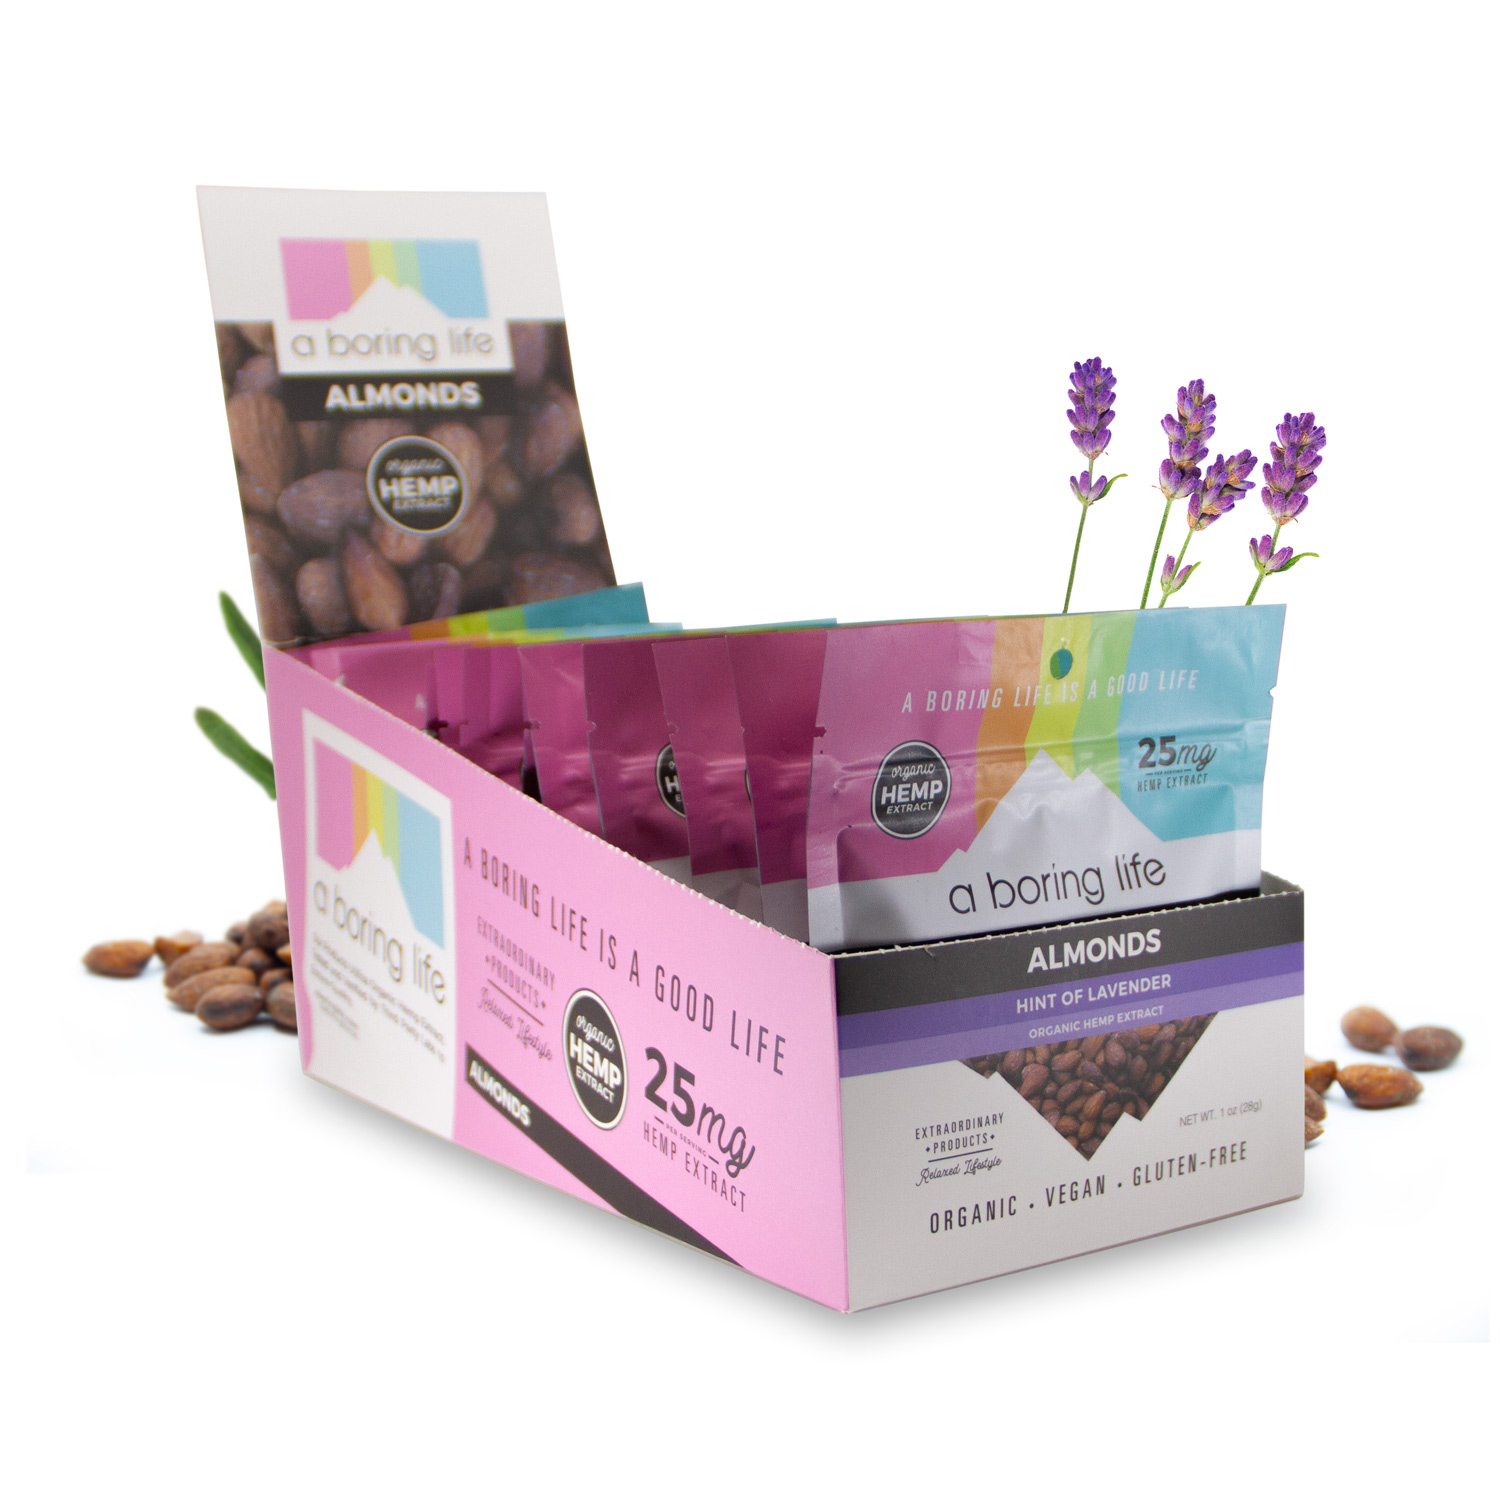 Case - Roasted Almonds with a Hint of Lavender, Case of 12